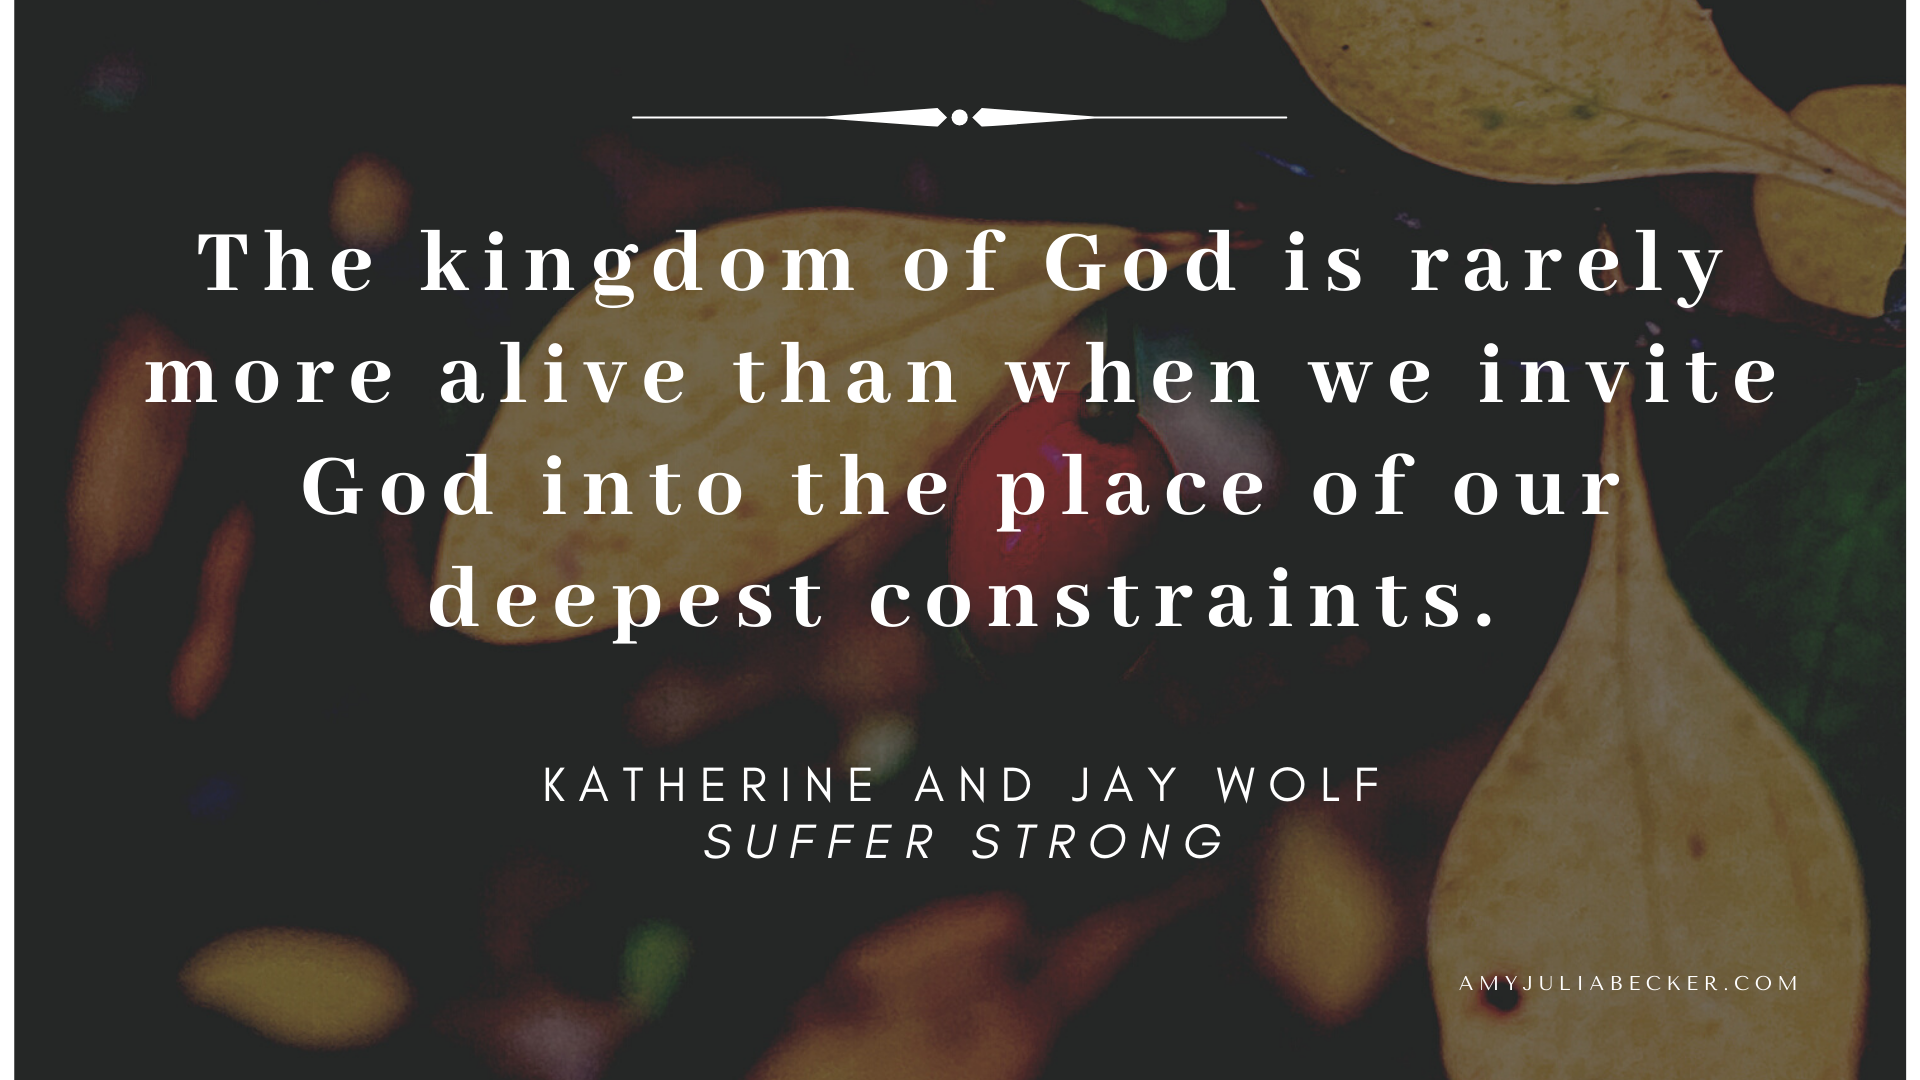 inviting God into constraints